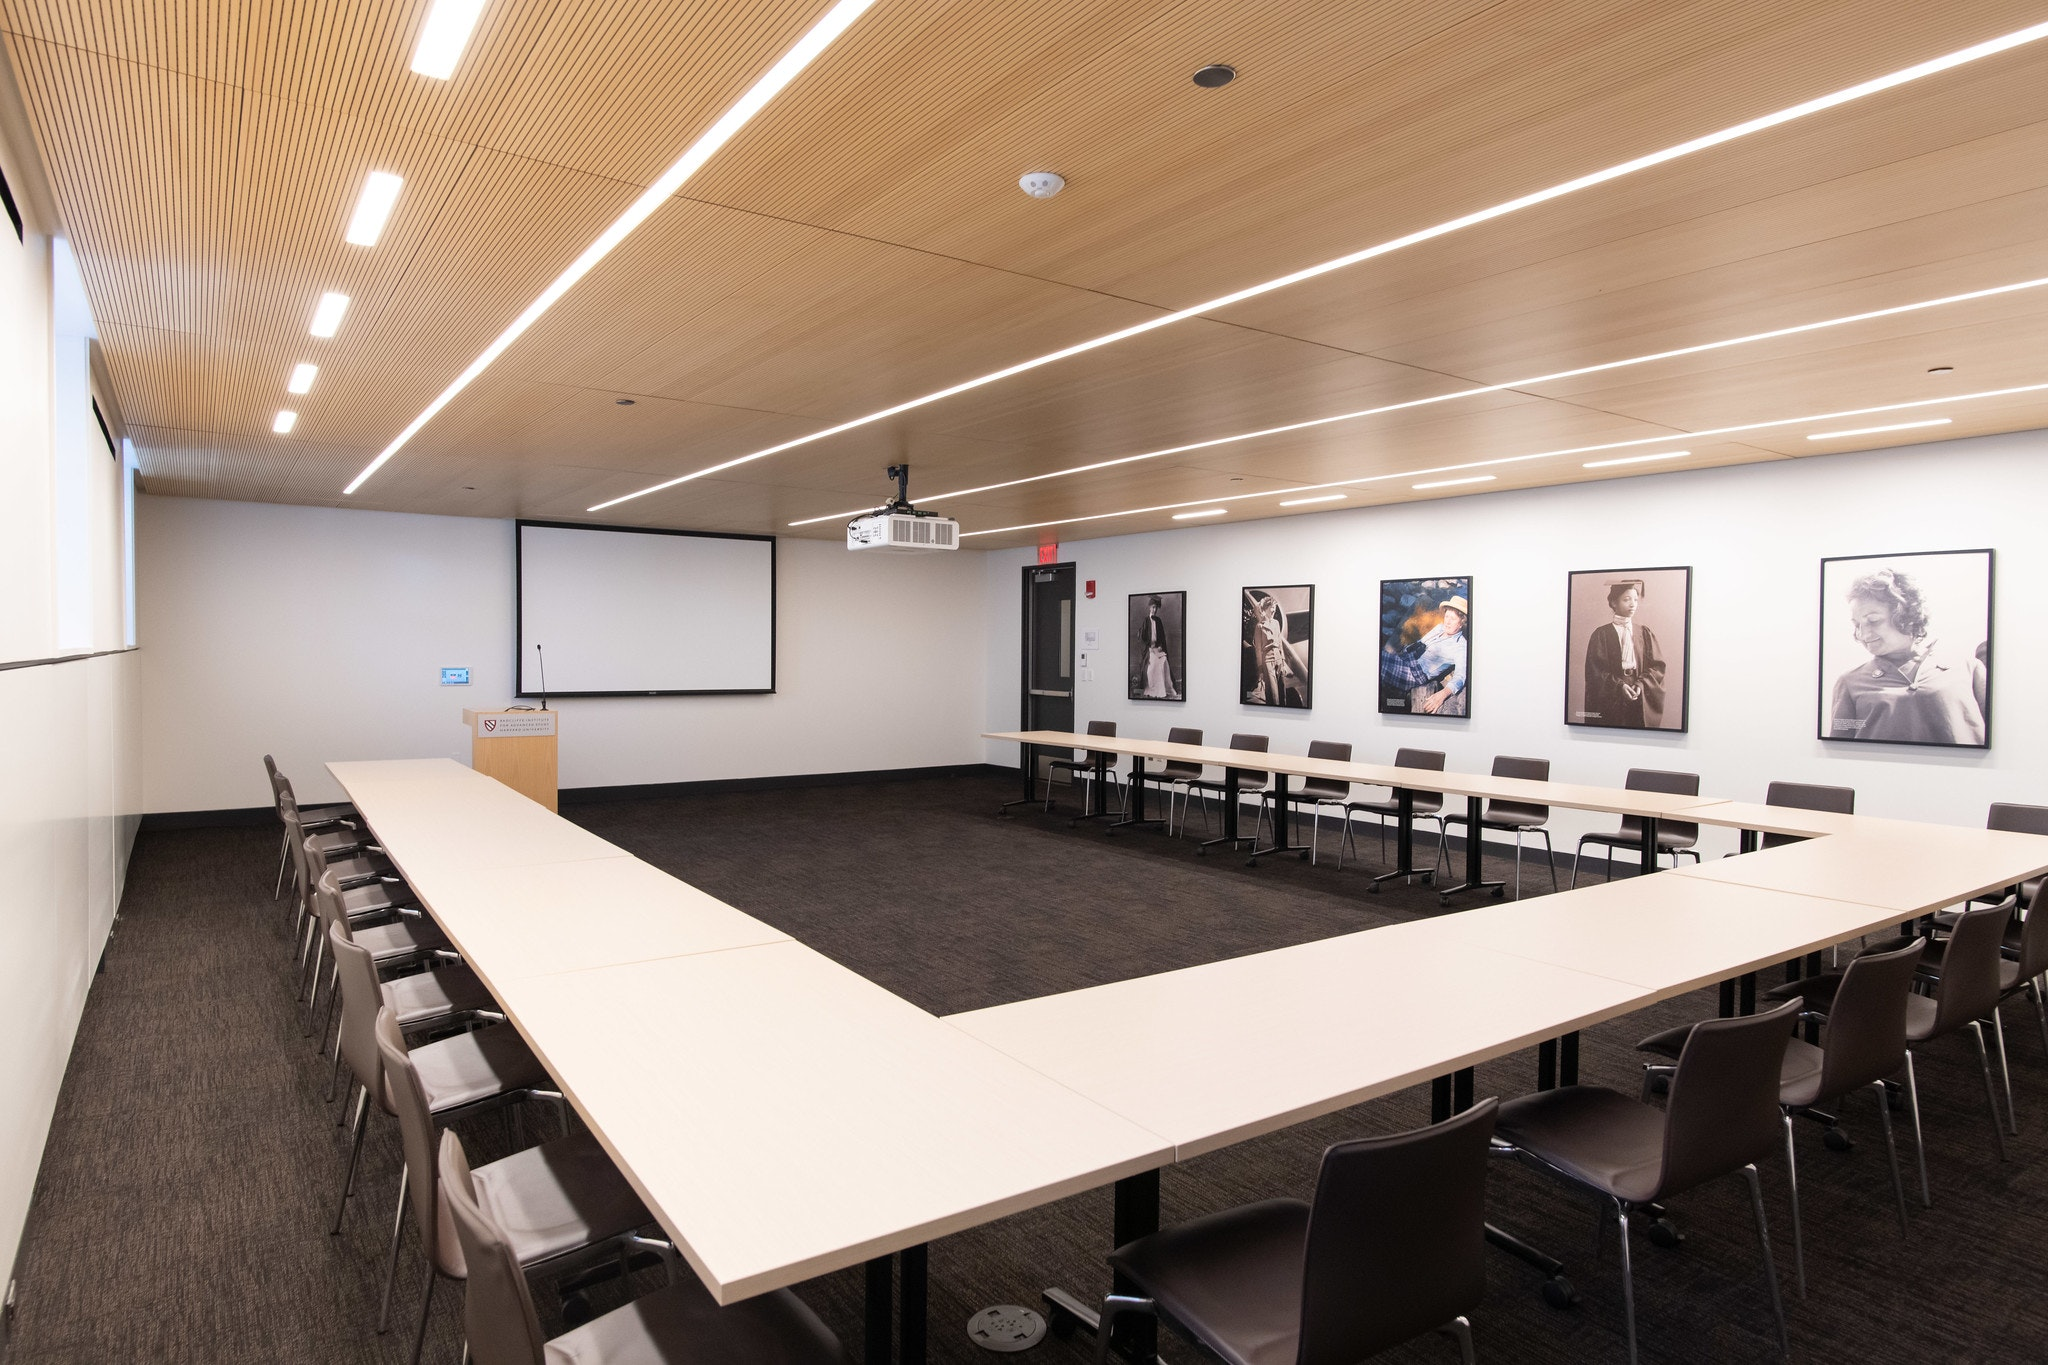 View from back of the room. Seating is set up in U-Shape for 24 people. In the front of the room is a podium and white projector screen behind it.